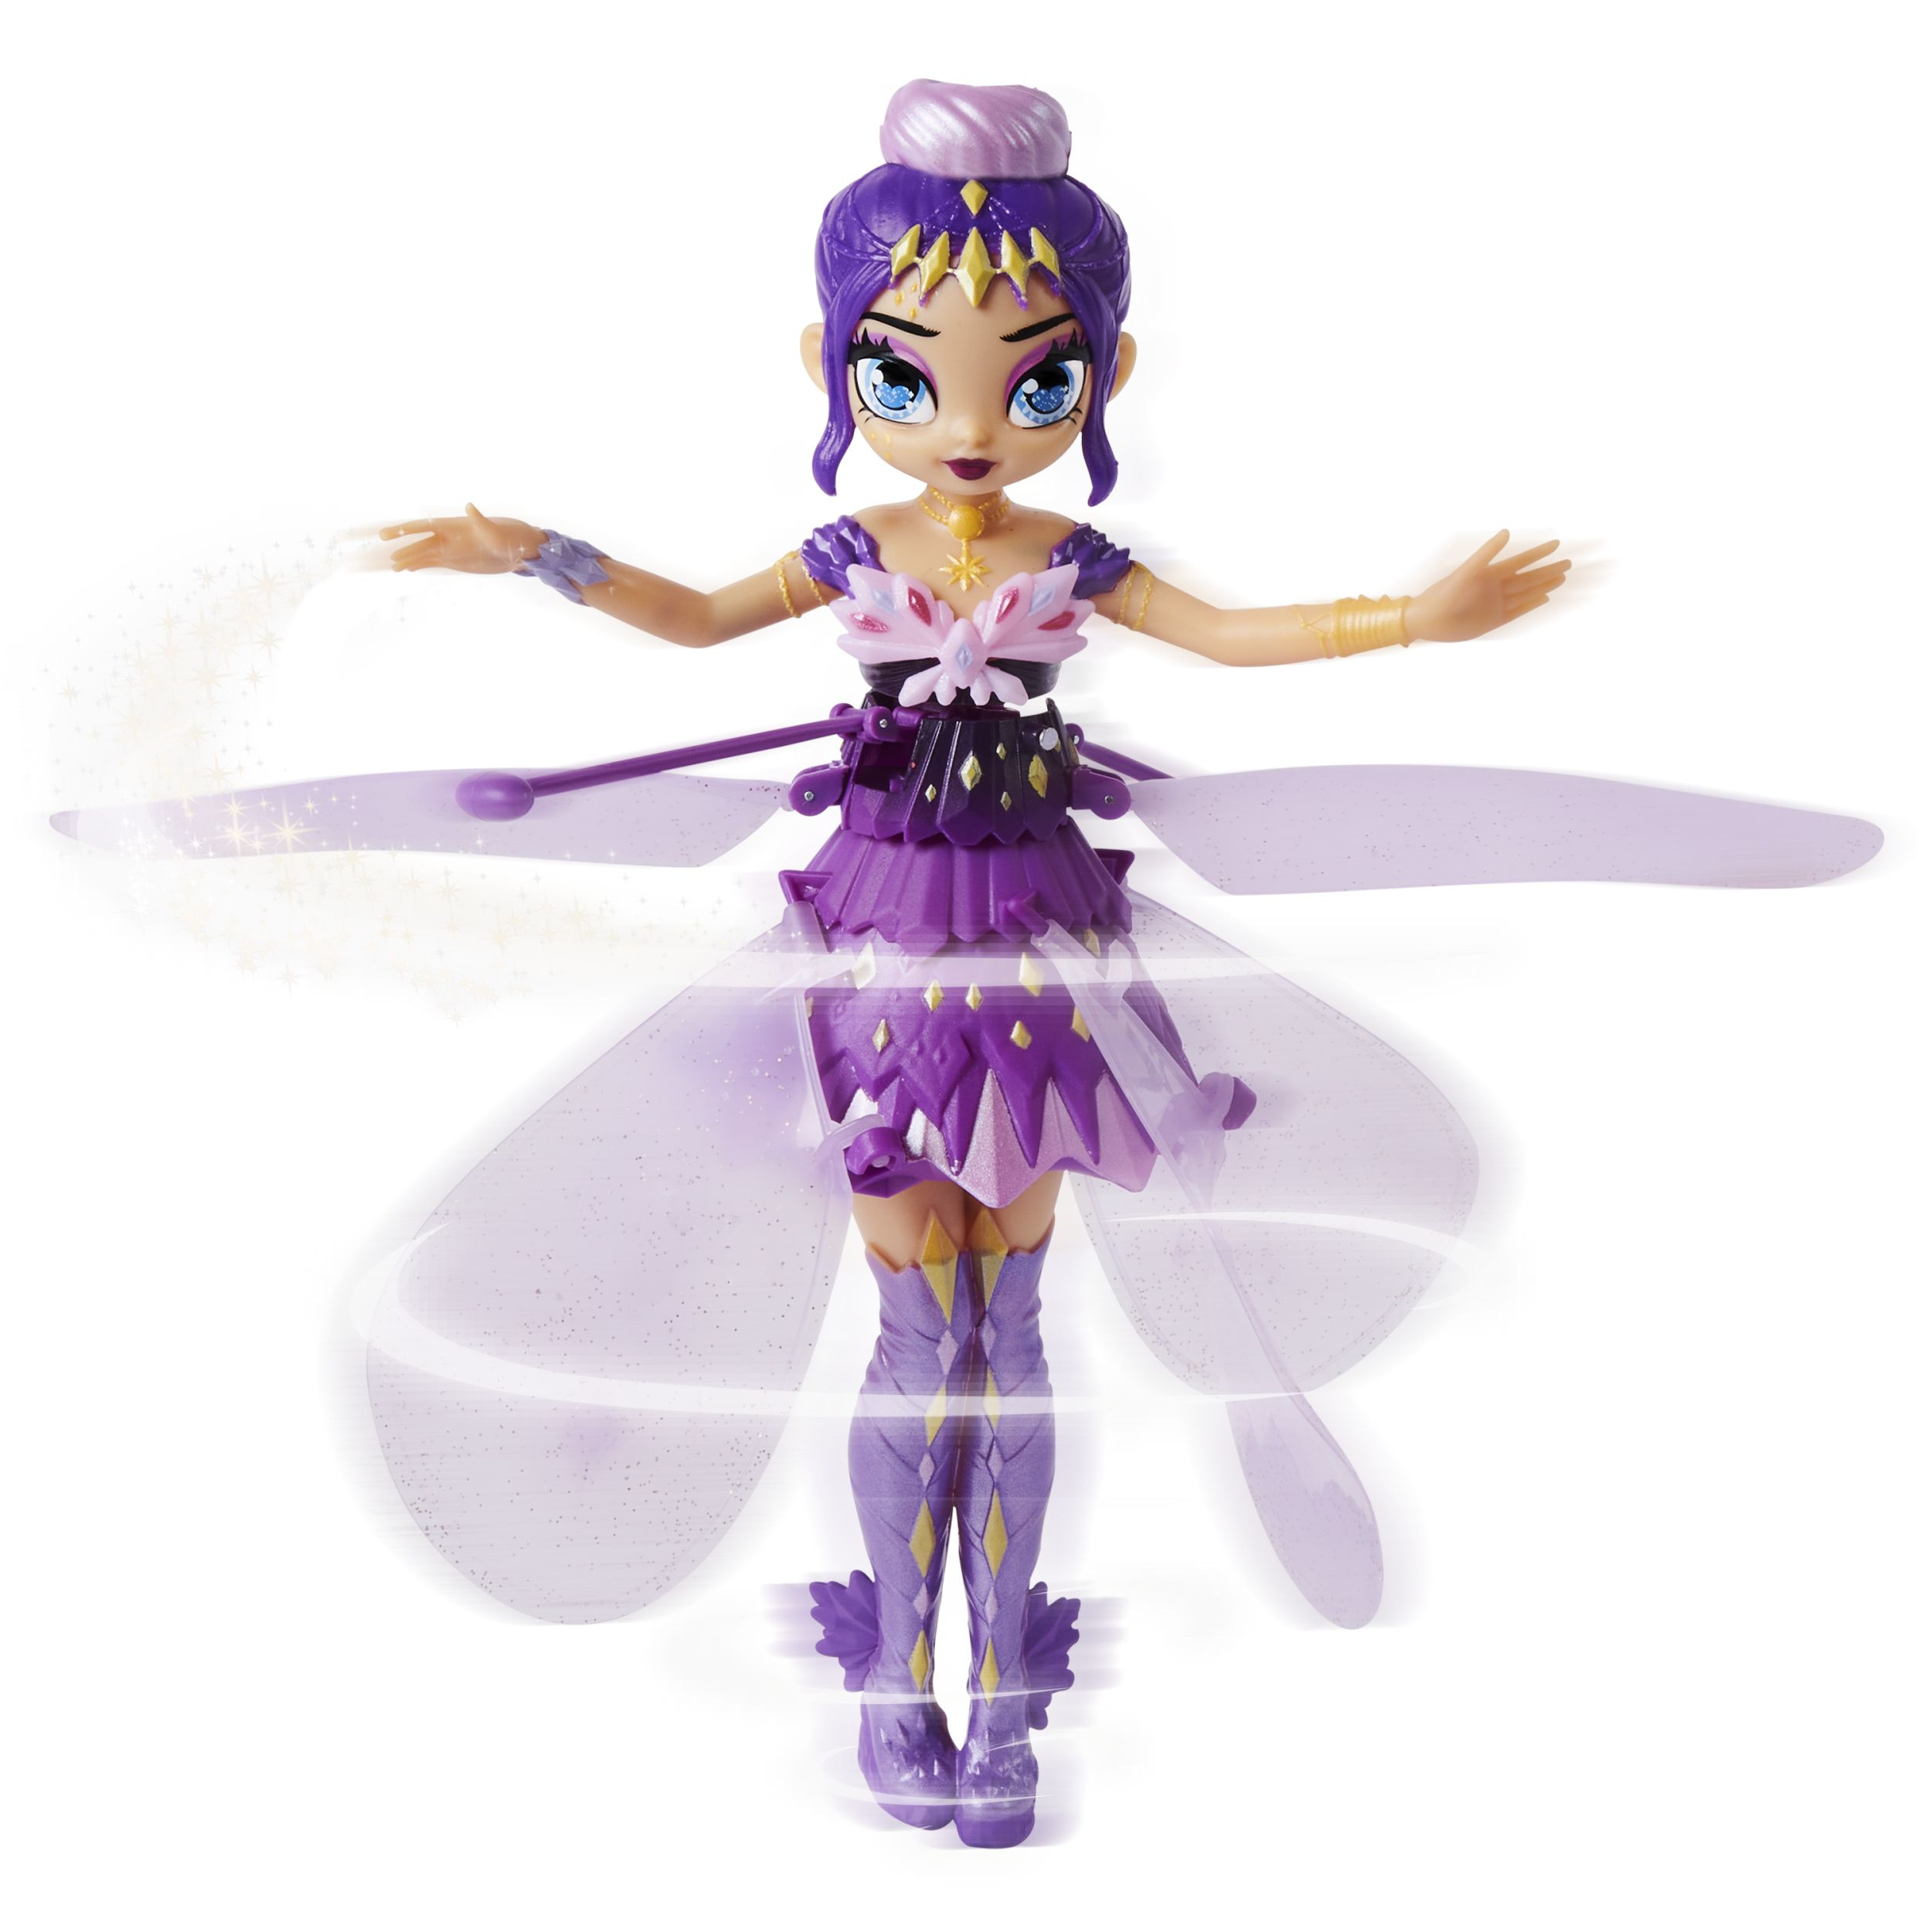 Hatchimals Pixies Crystal Flyers Purple Magical Flying Pixie Toy For Kids Aged 6 And Up Walmart Com Pixie Girl Hair Colors Hatchimals